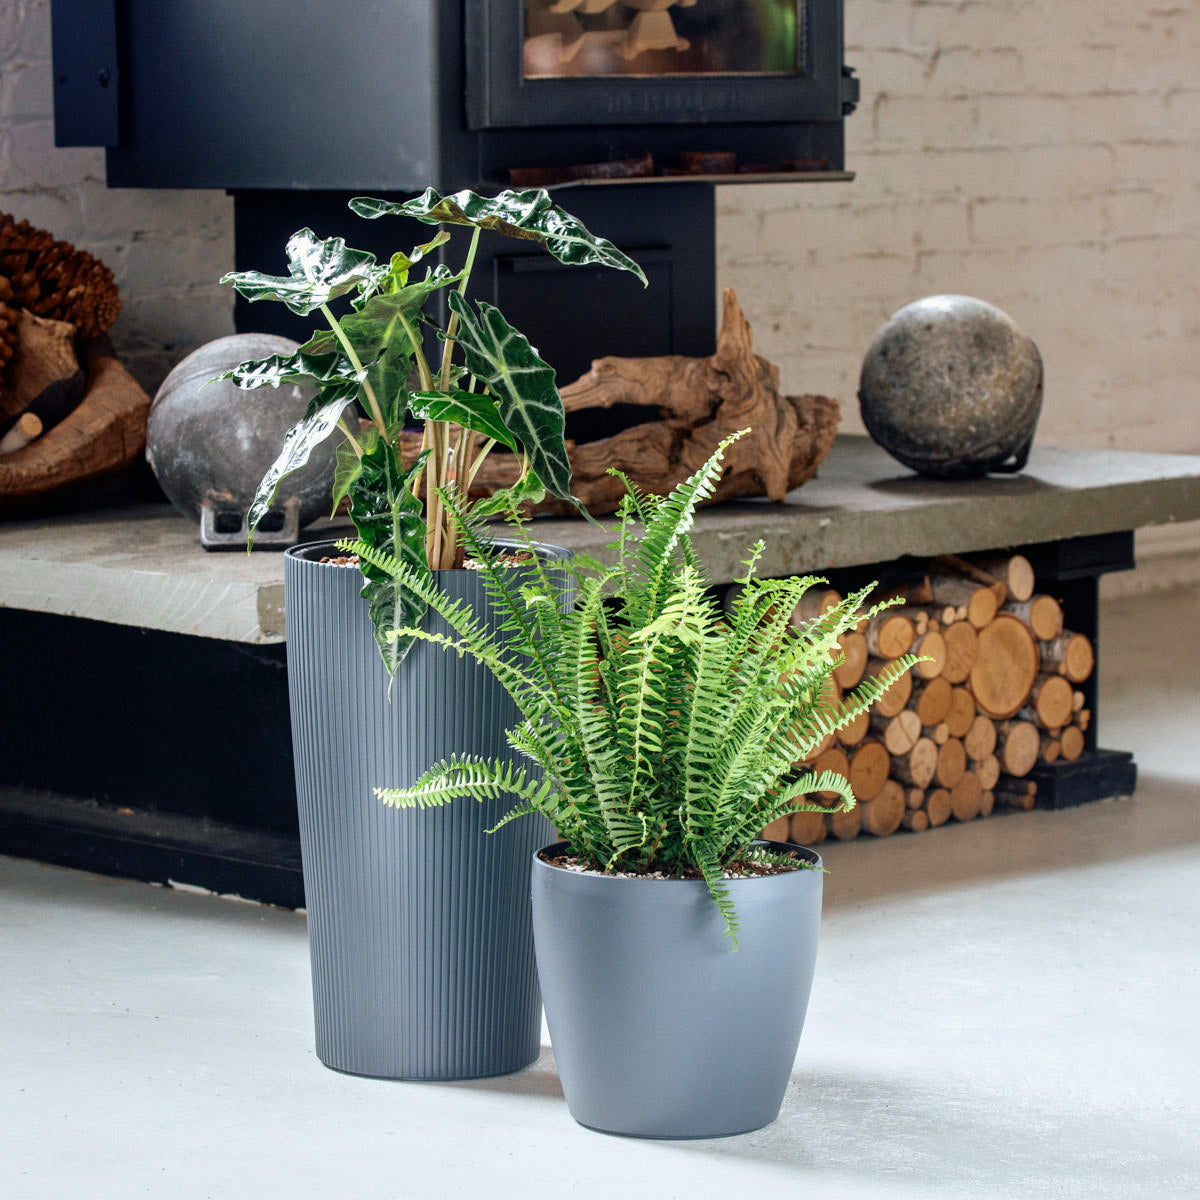 Dumbo plant bundle in Lechuza self-watering planters - My City Plants